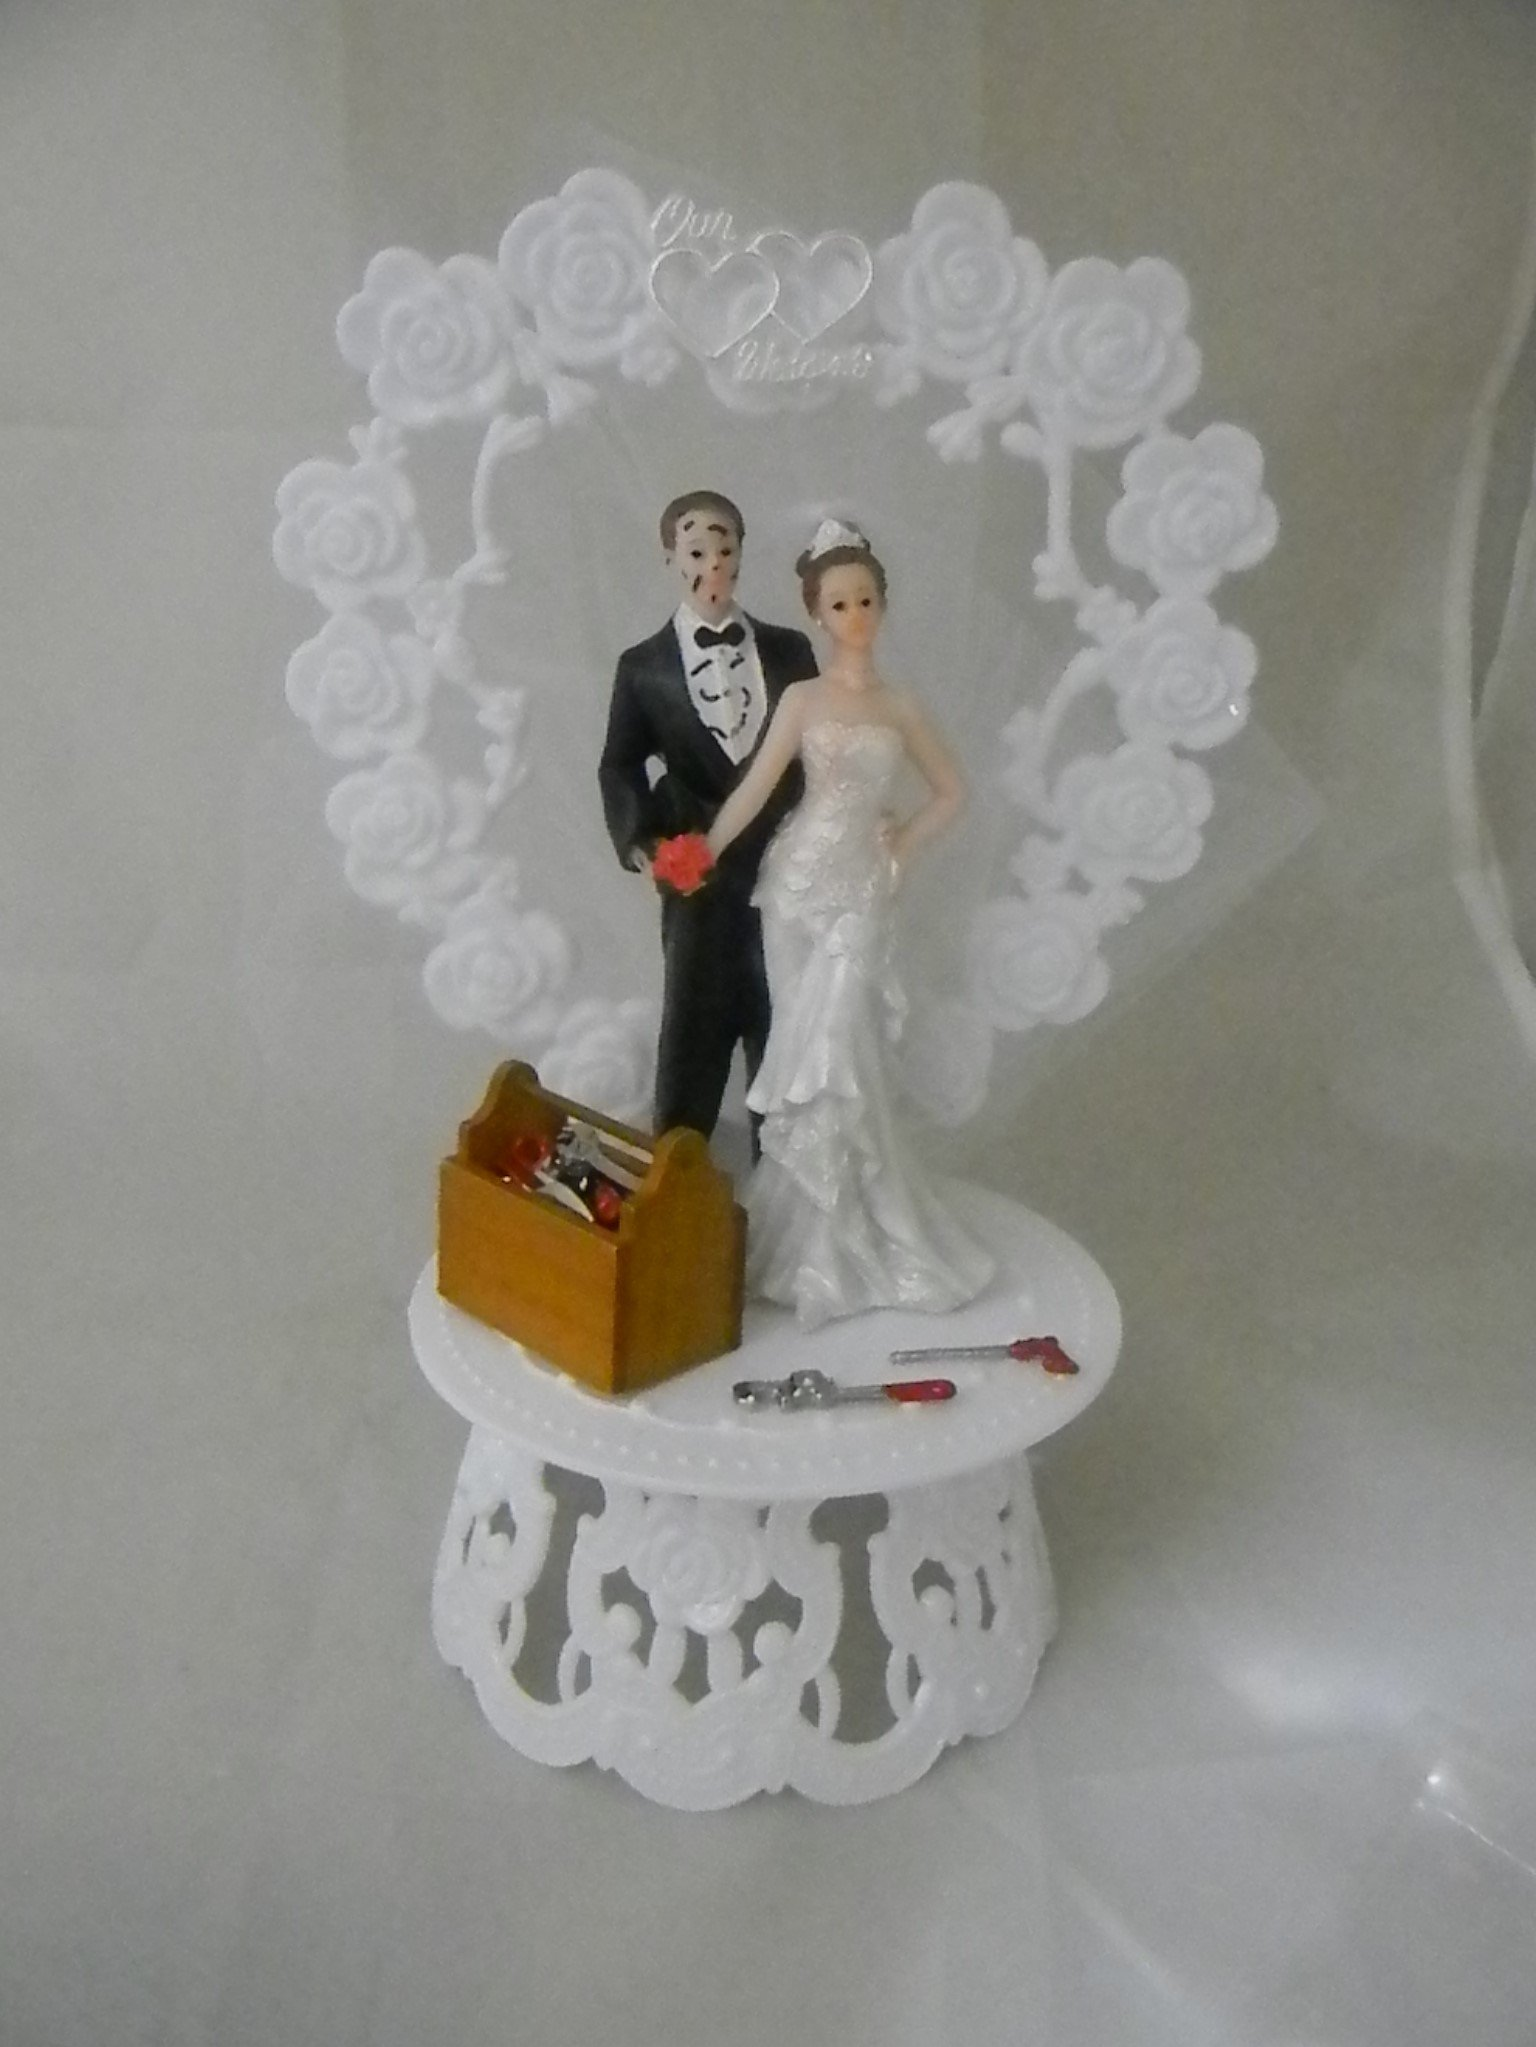 Wedding Reception Bride Groom Garage Mechanic tool grease Cake Topper by Custom Design Wedding Supplies by Suzanne